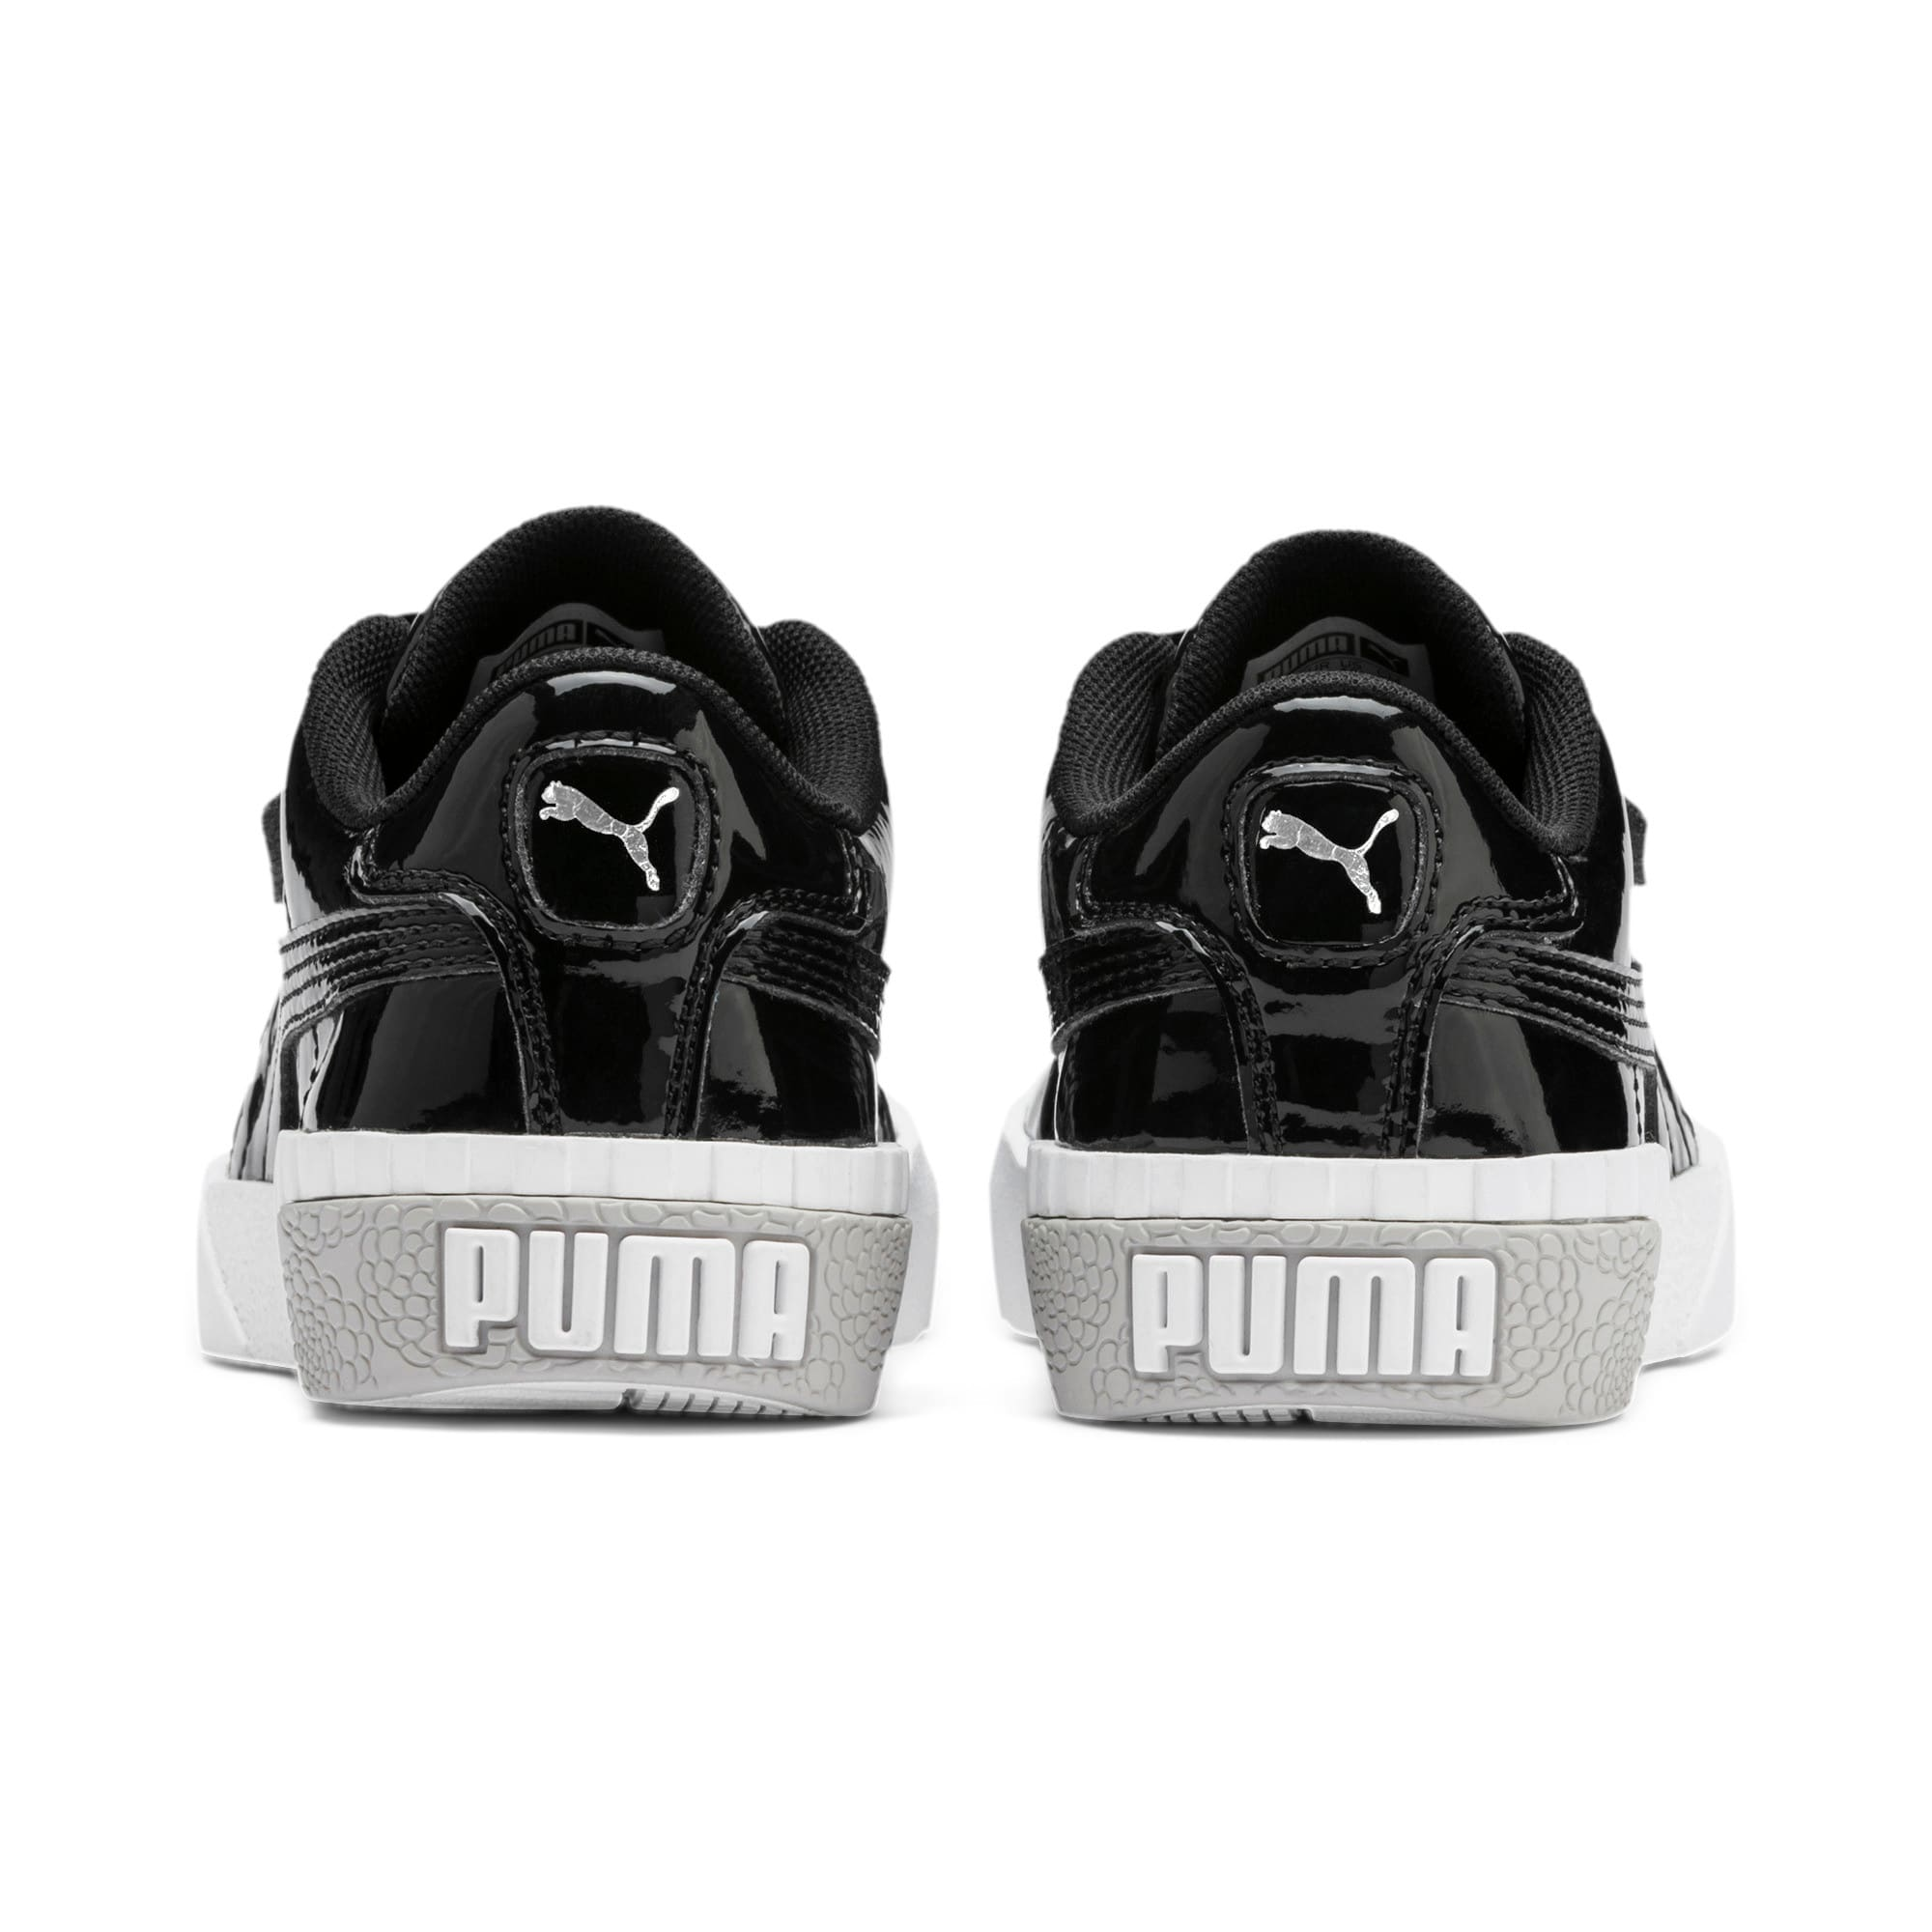 Thumbnail 3 of Cali Patent Kids' Trainers, Puma Black-Puma White, medium